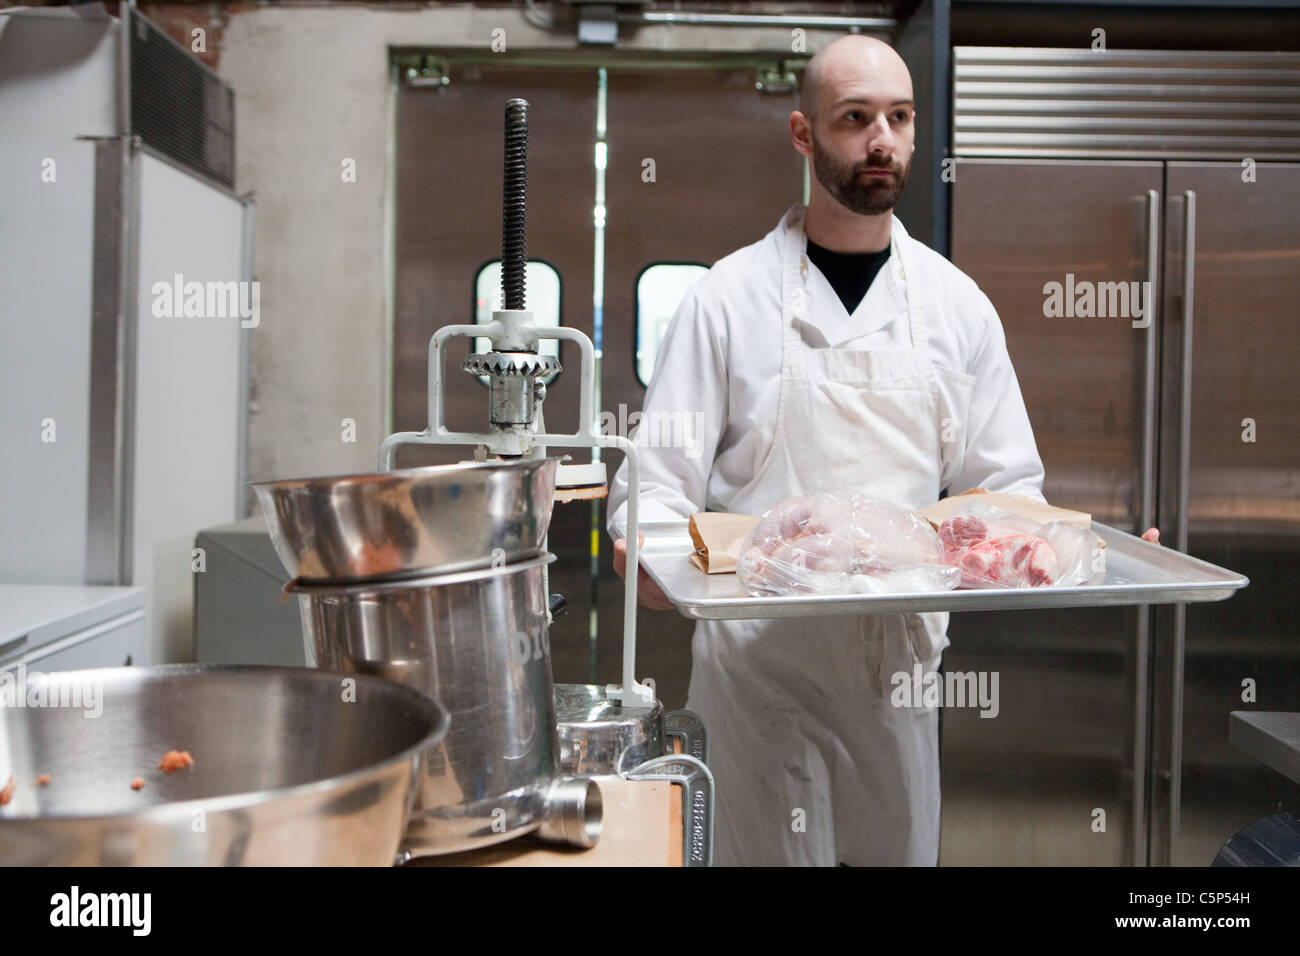 Butcher with tray of meat - Stock Image